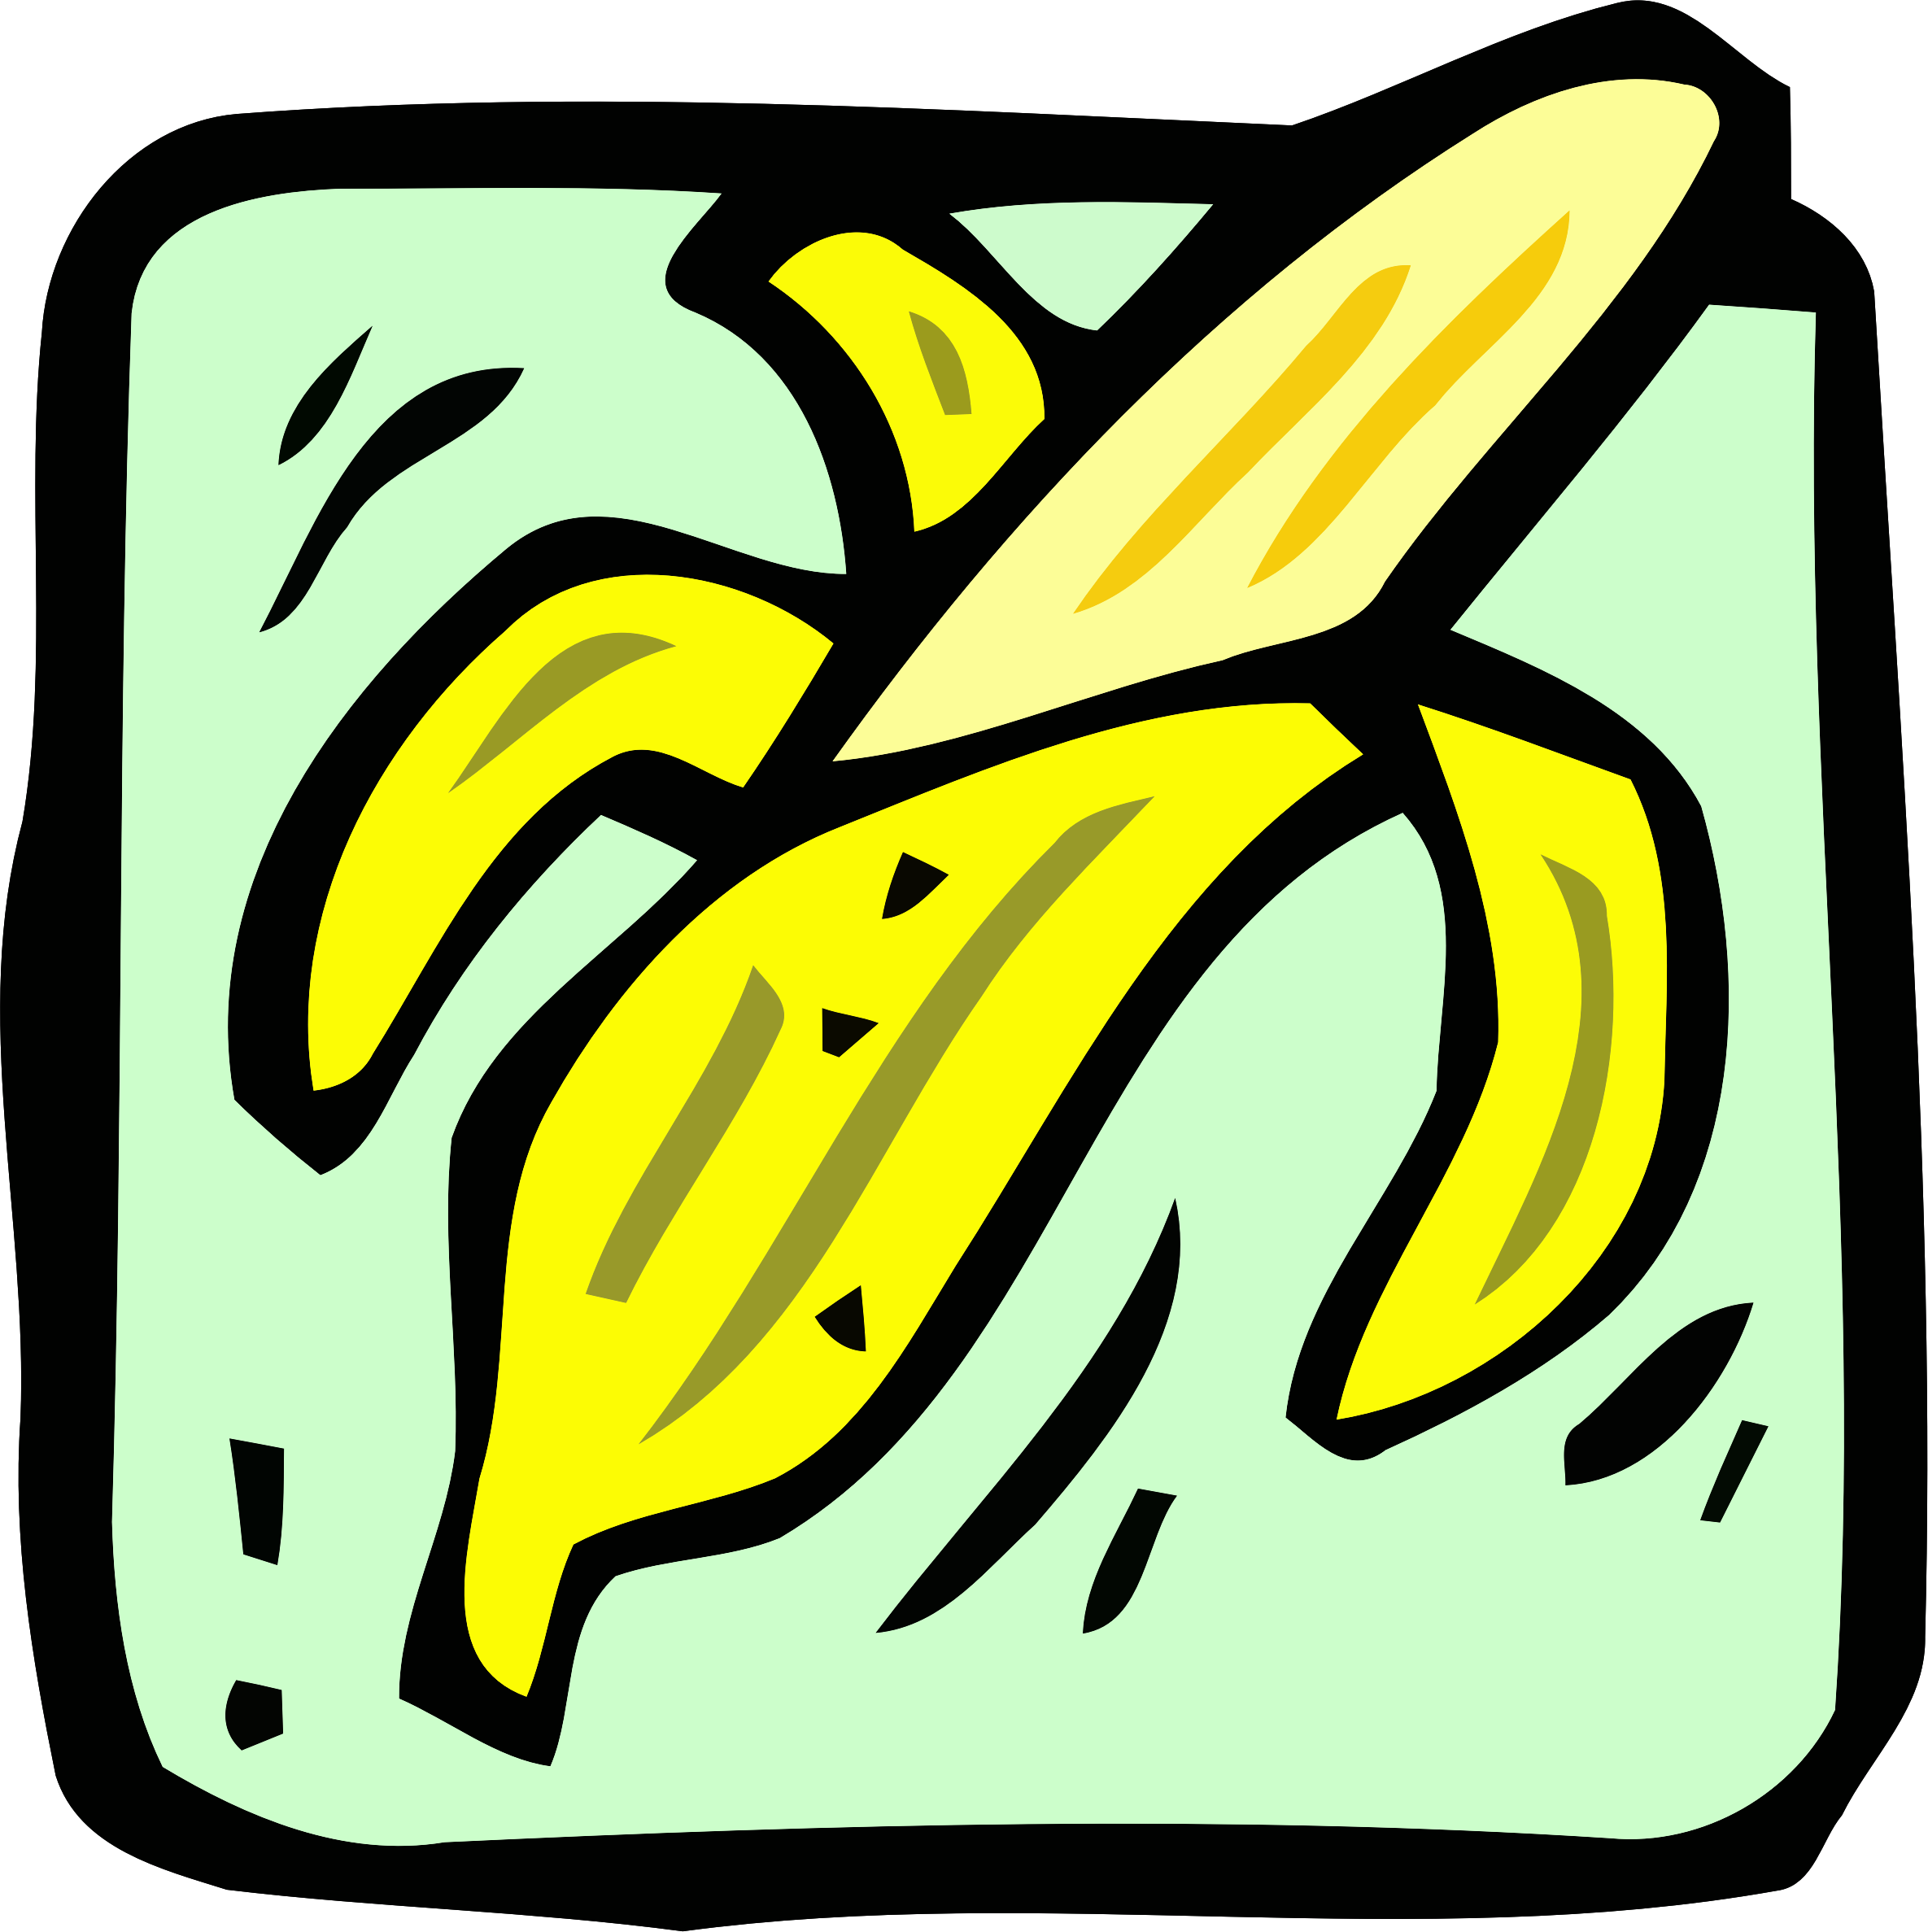 Food and drink icon - banana by Firkin